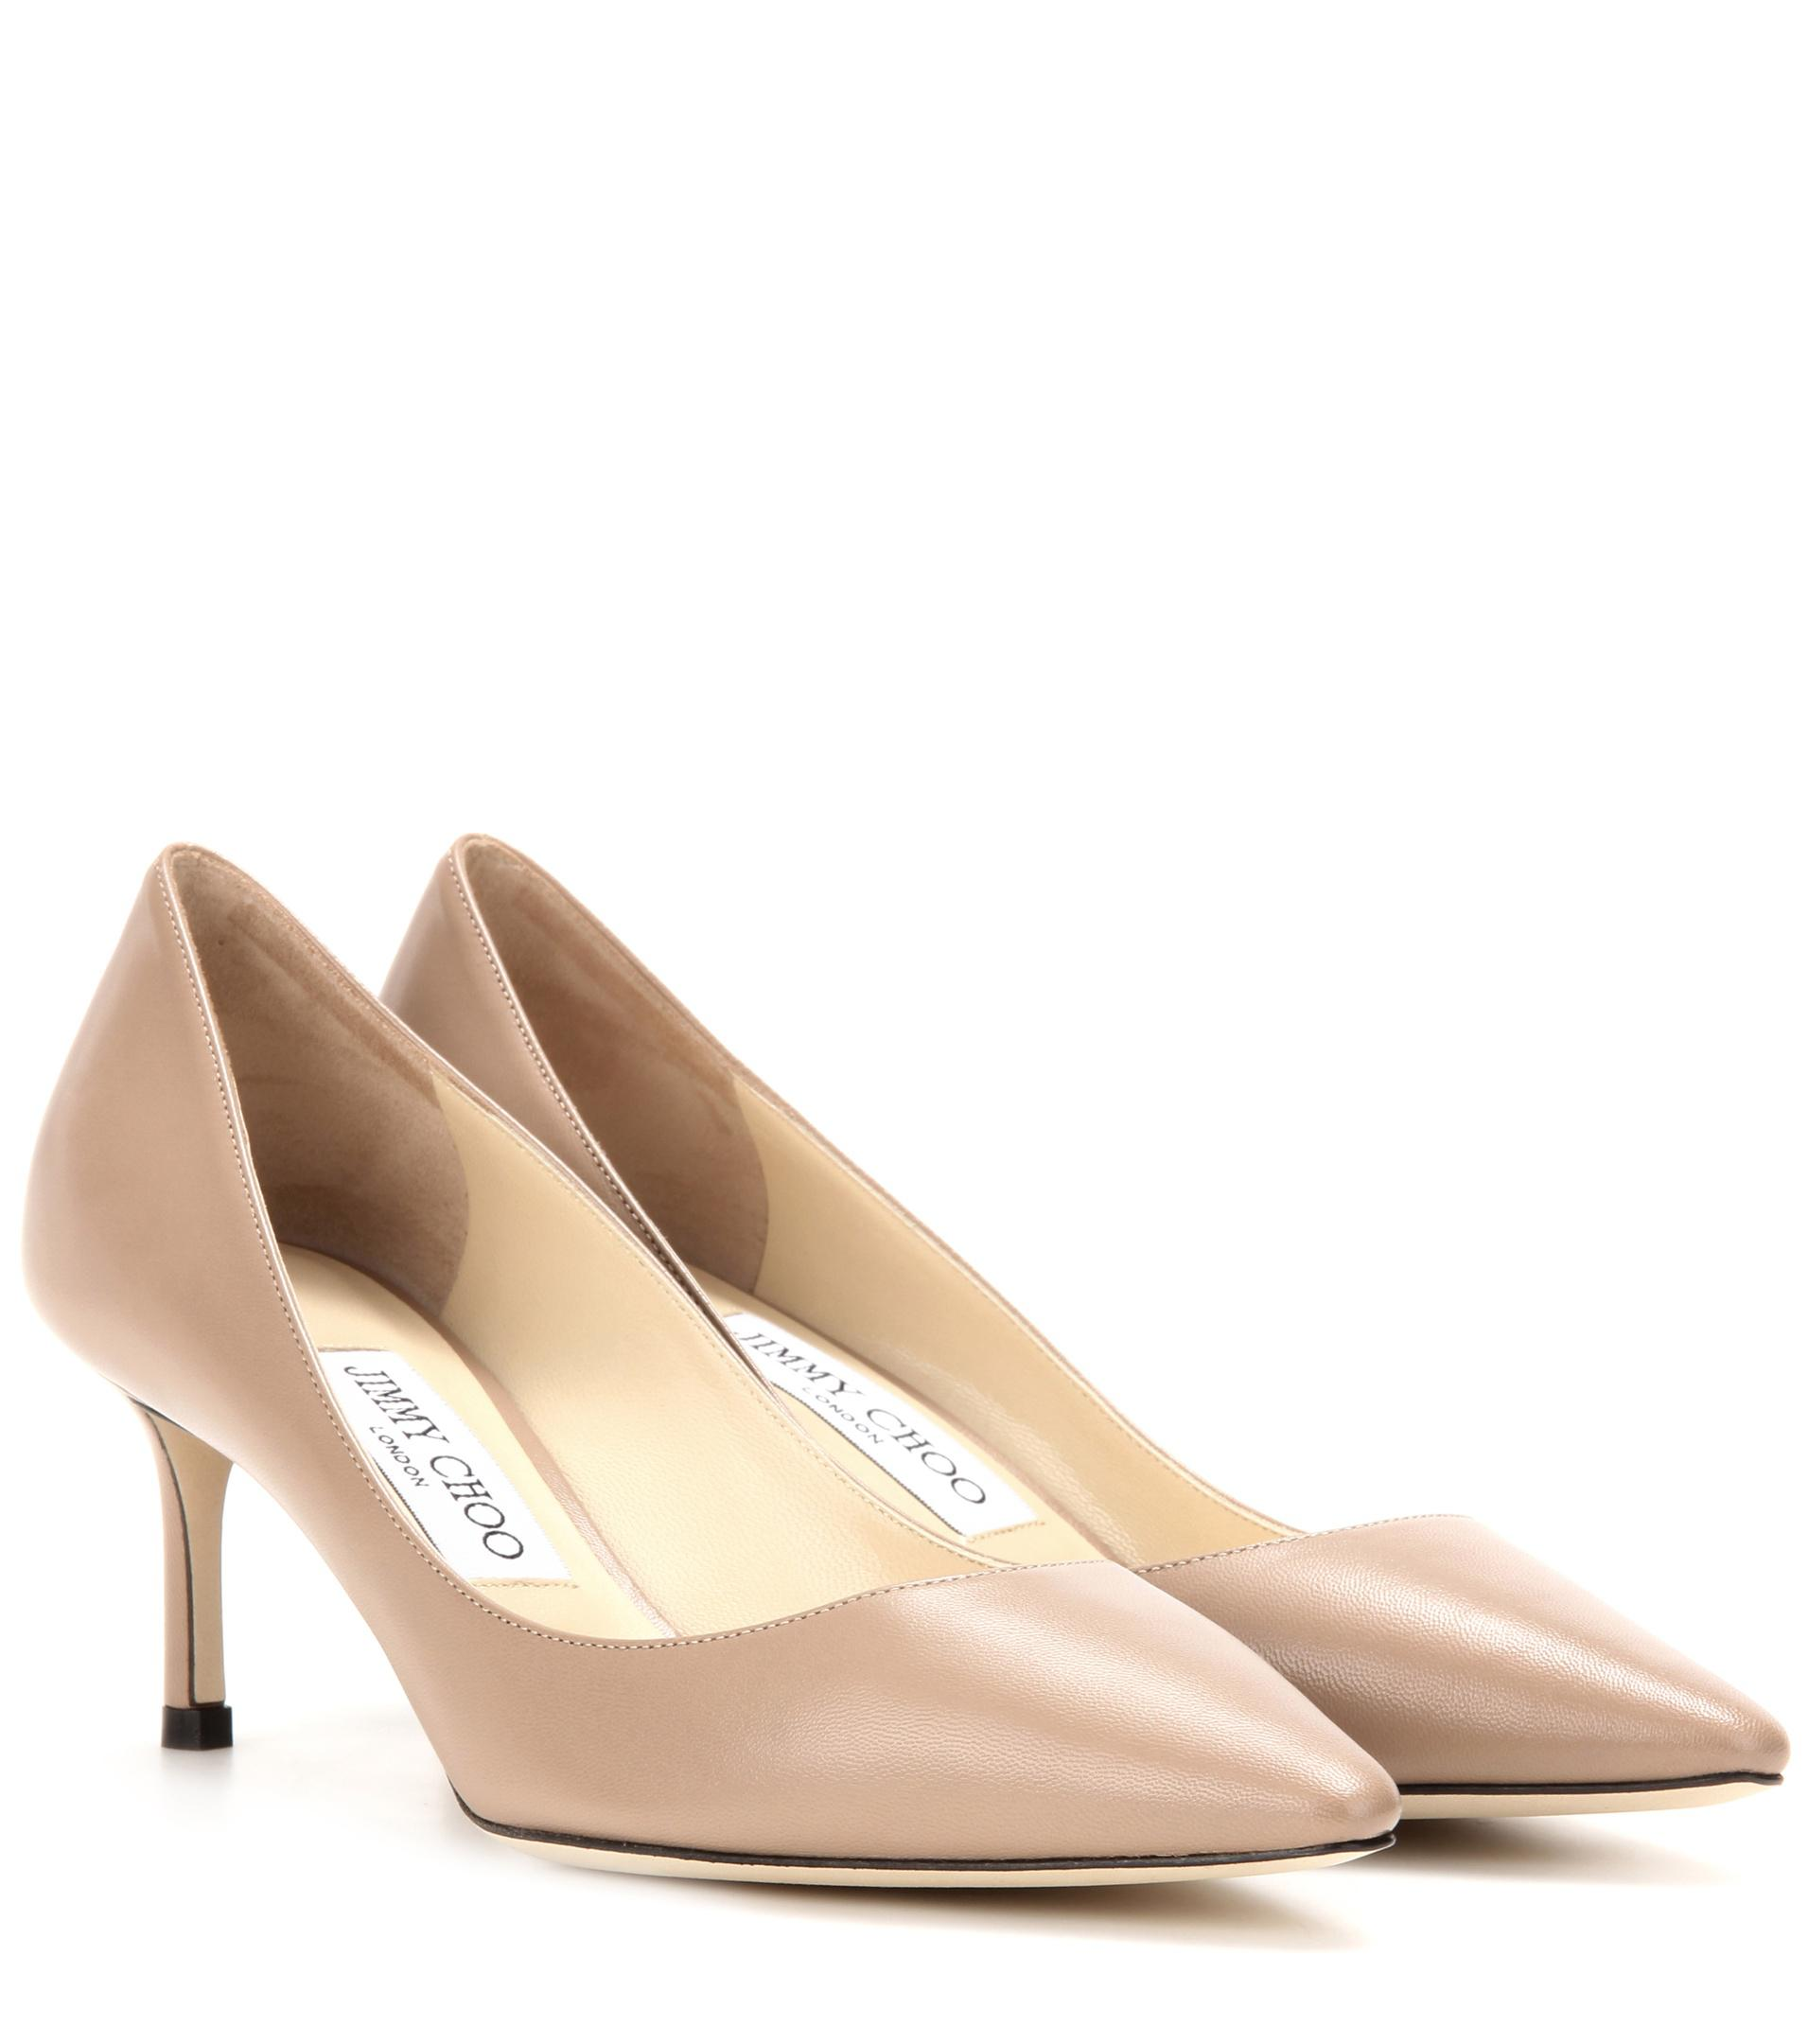 Romy 110 pumps - Nude & Neutrals Jimmy Choo London DCqPT